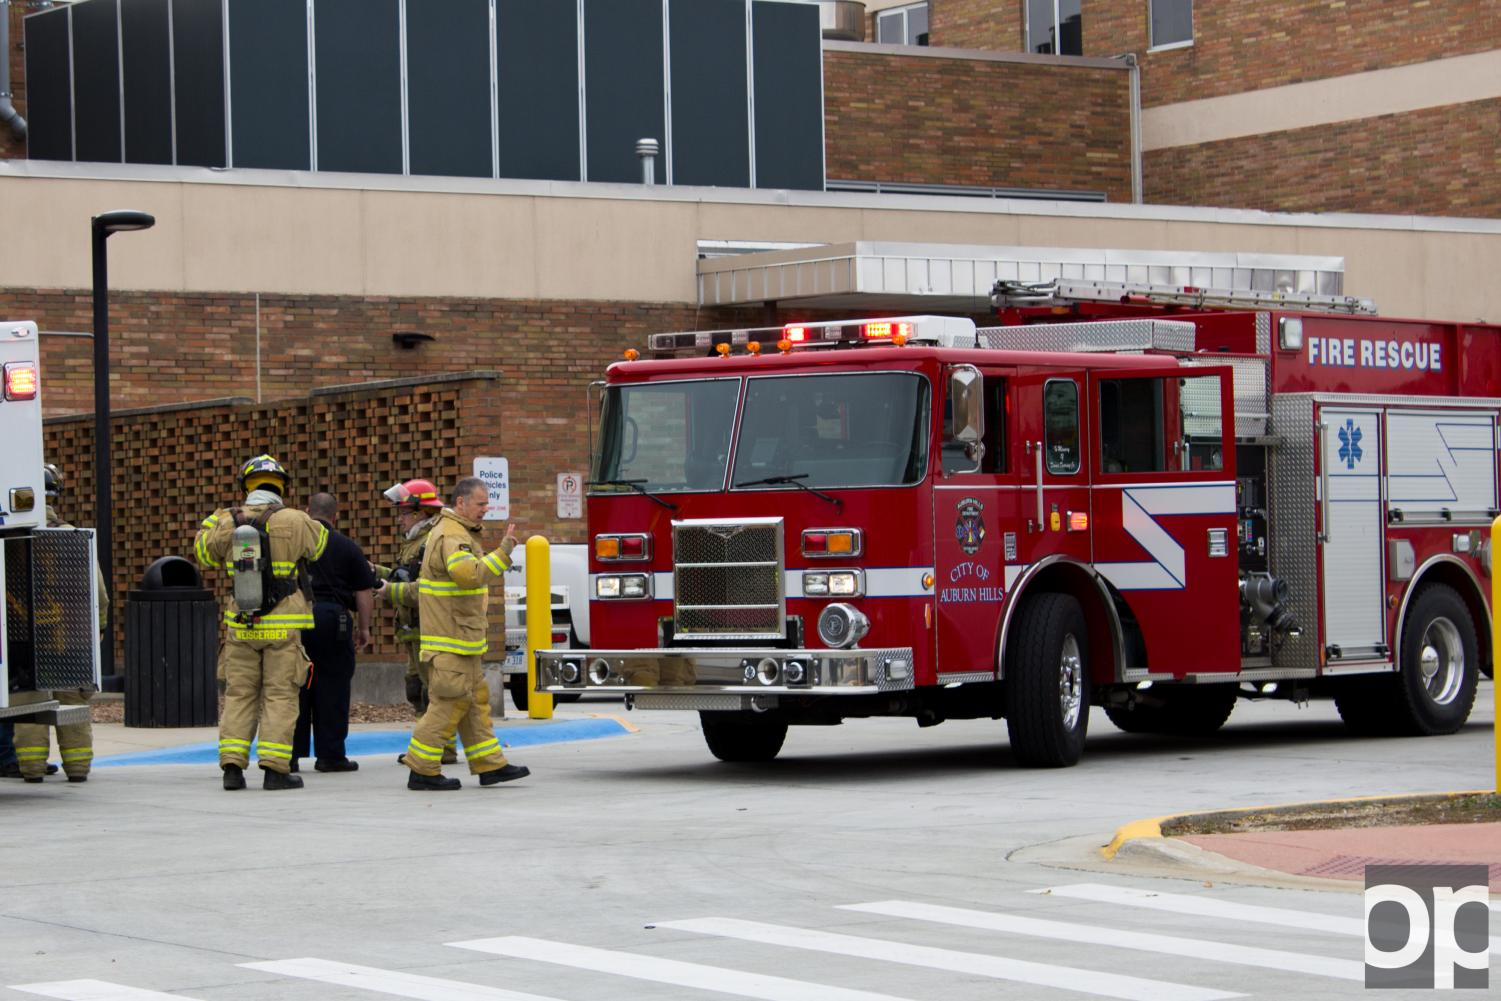 Firemen suit up to investigate the smoke in Vandenberg Hall.